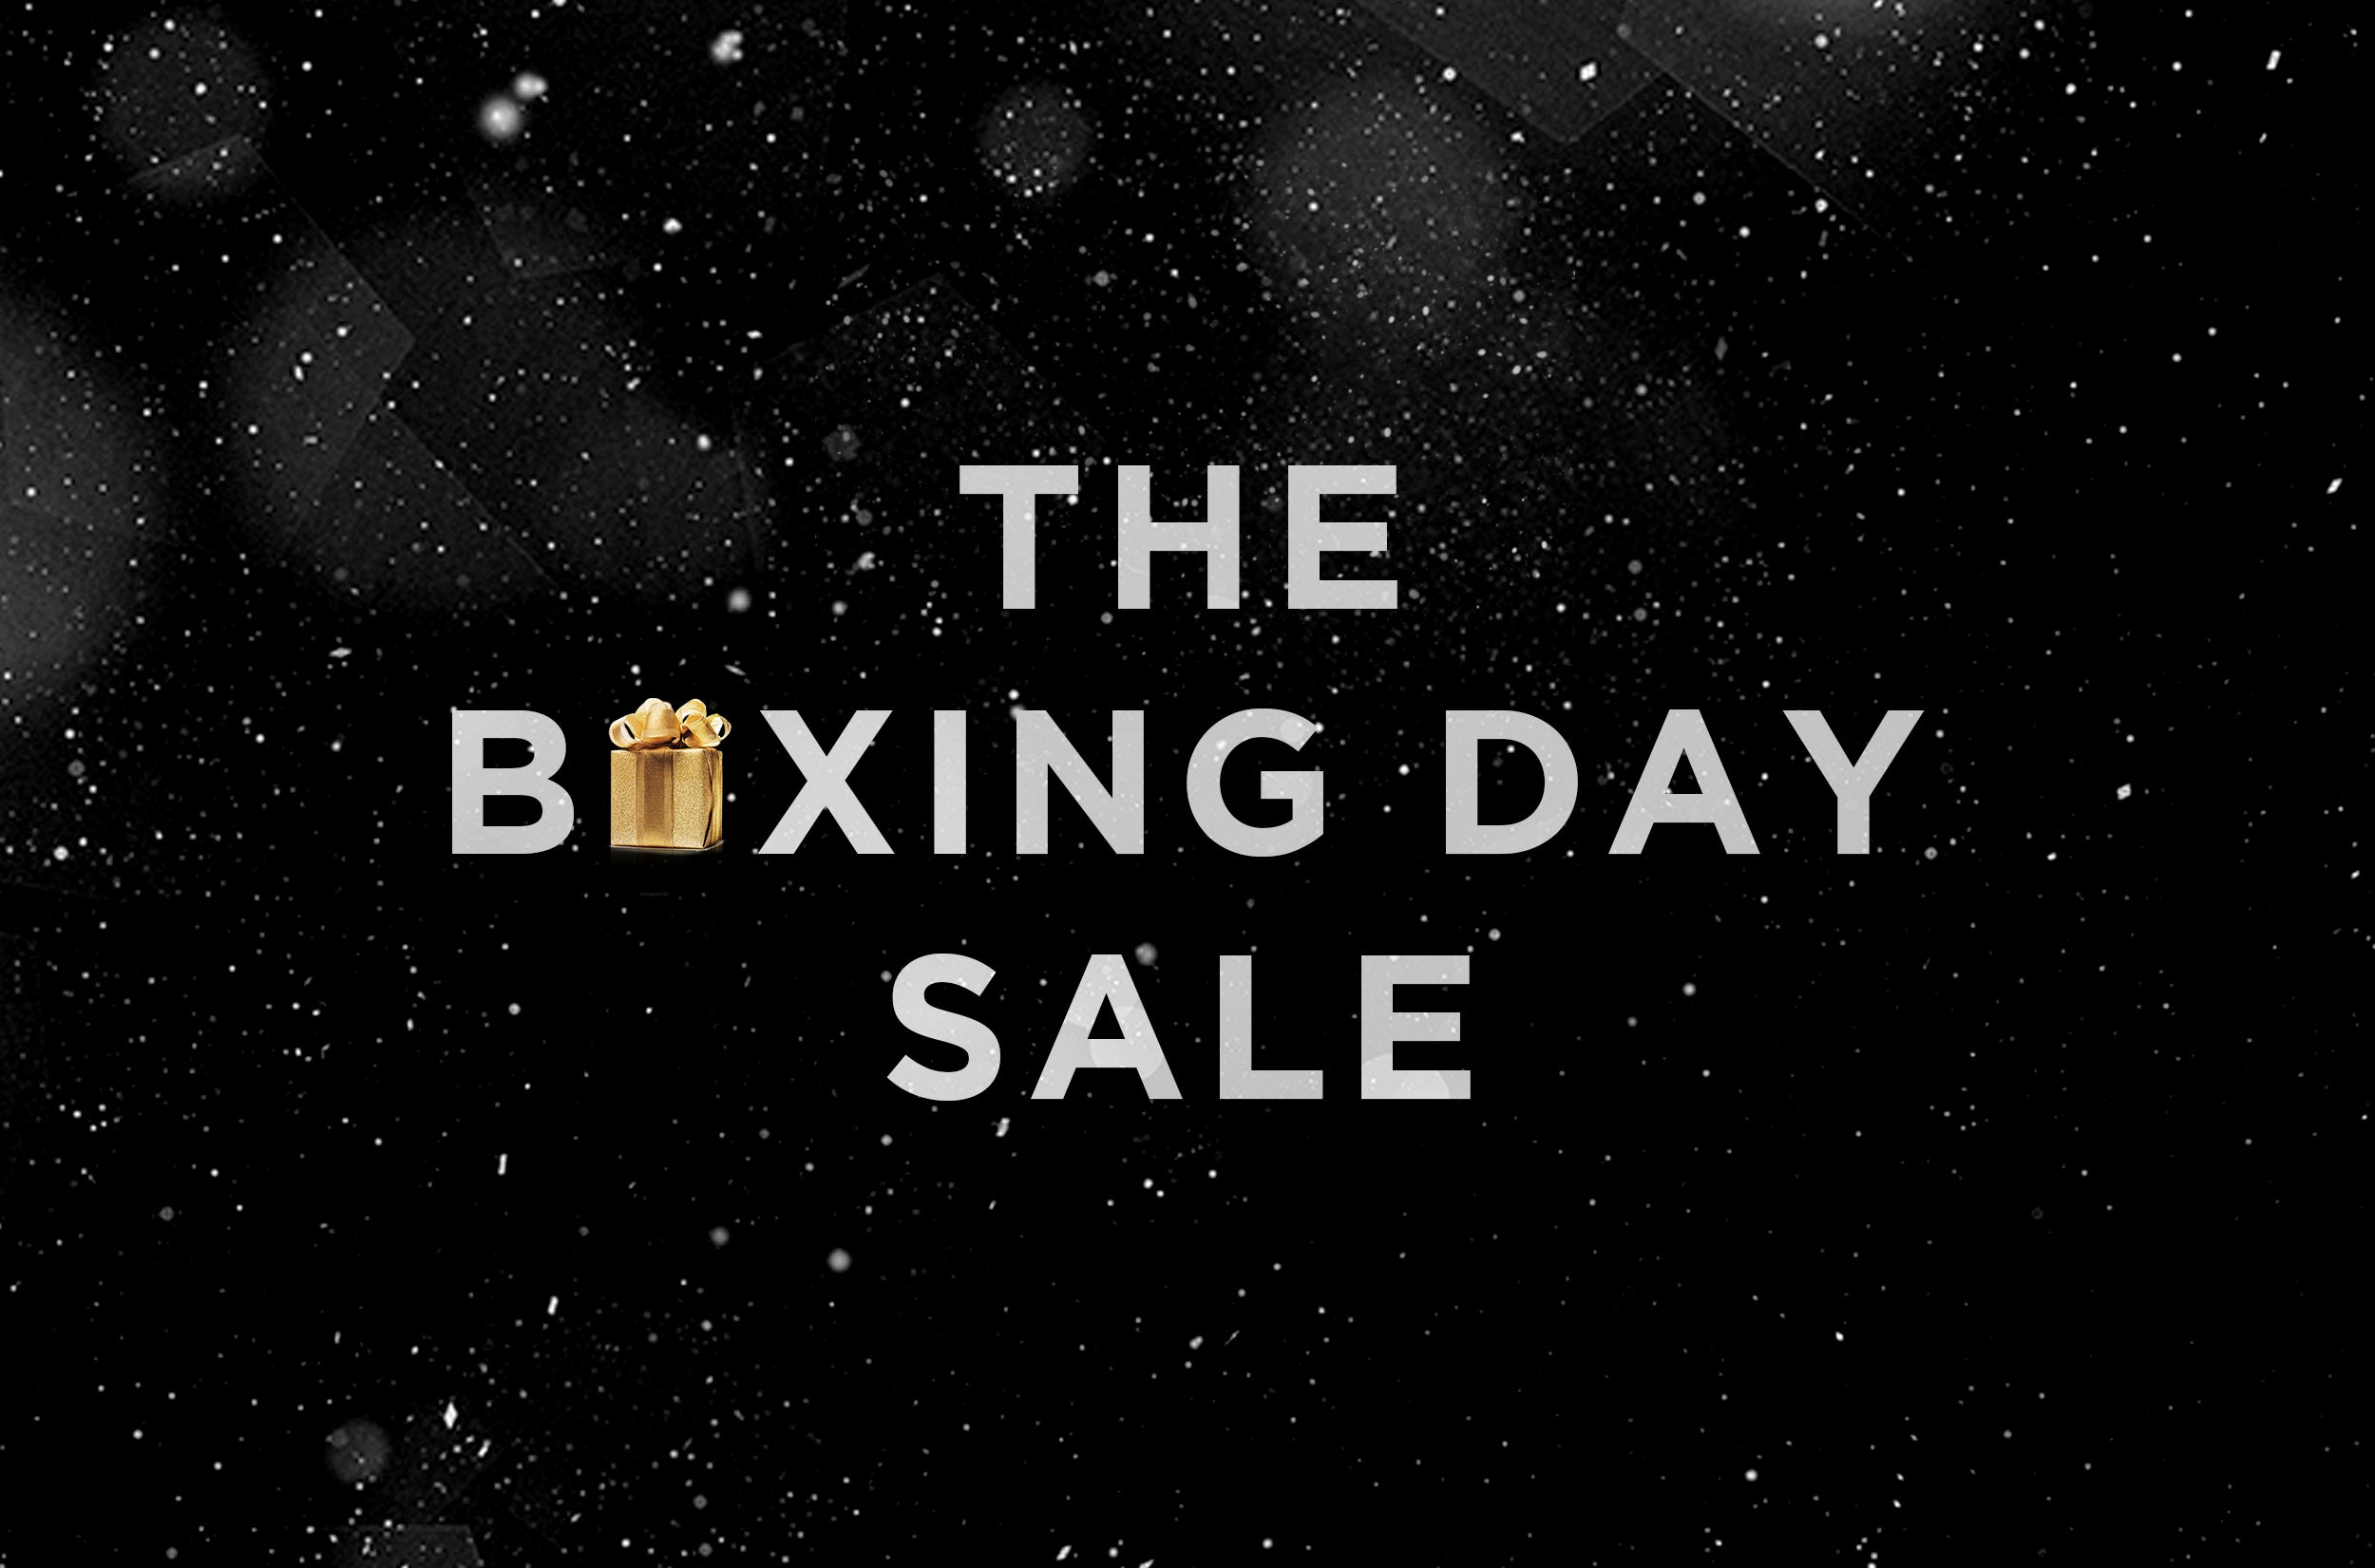 The Boxing Day Sale. Sitewide. Worldwide. December 24th.